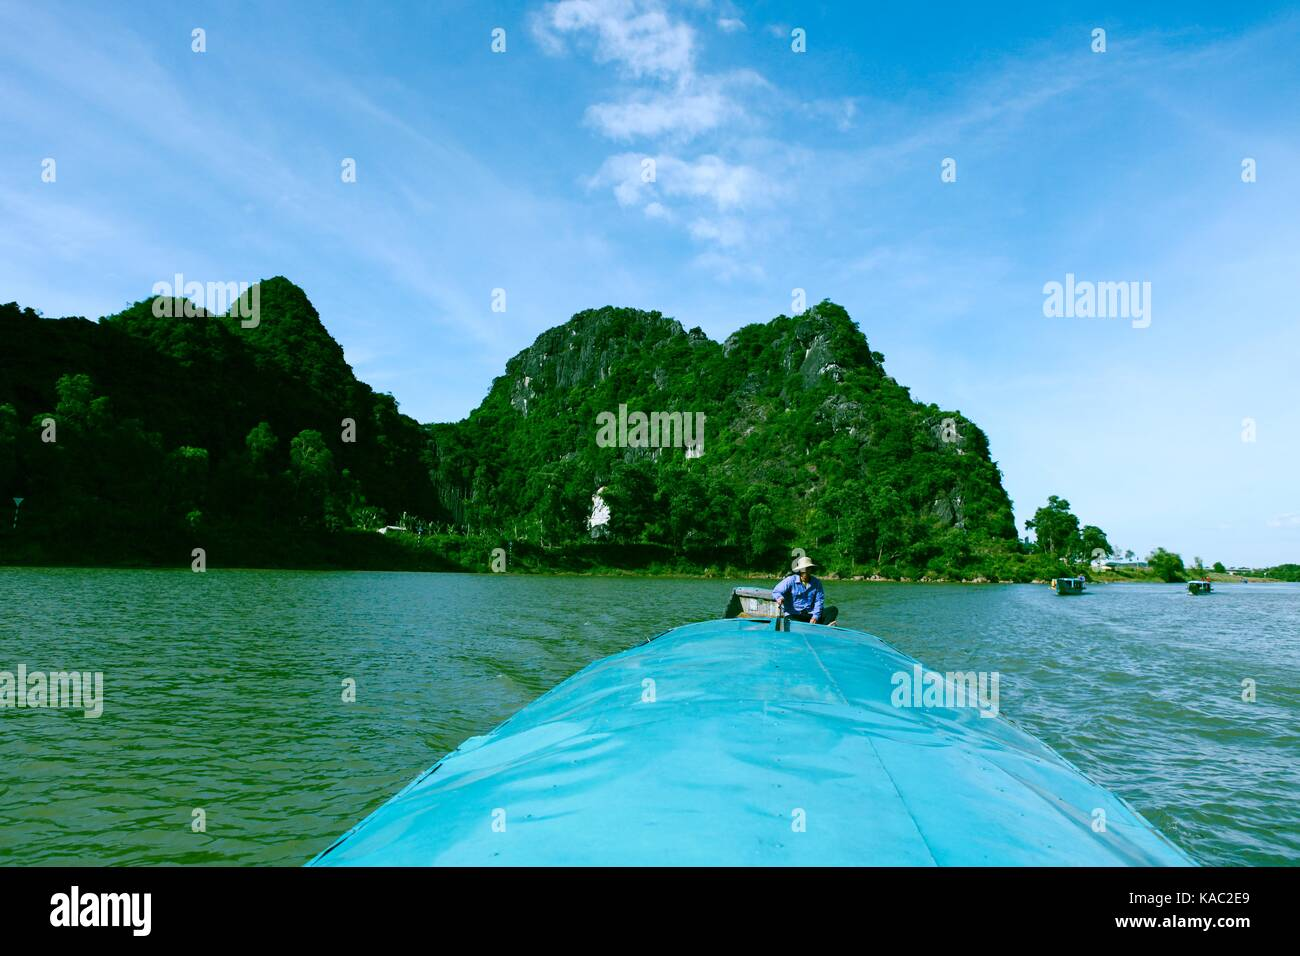 QUANG BINH, VIETNAM - AUGUST 11, 2017: Amazing natural landscape at Quang Binh, Viet Nam on day, boat moving on - Stock Image